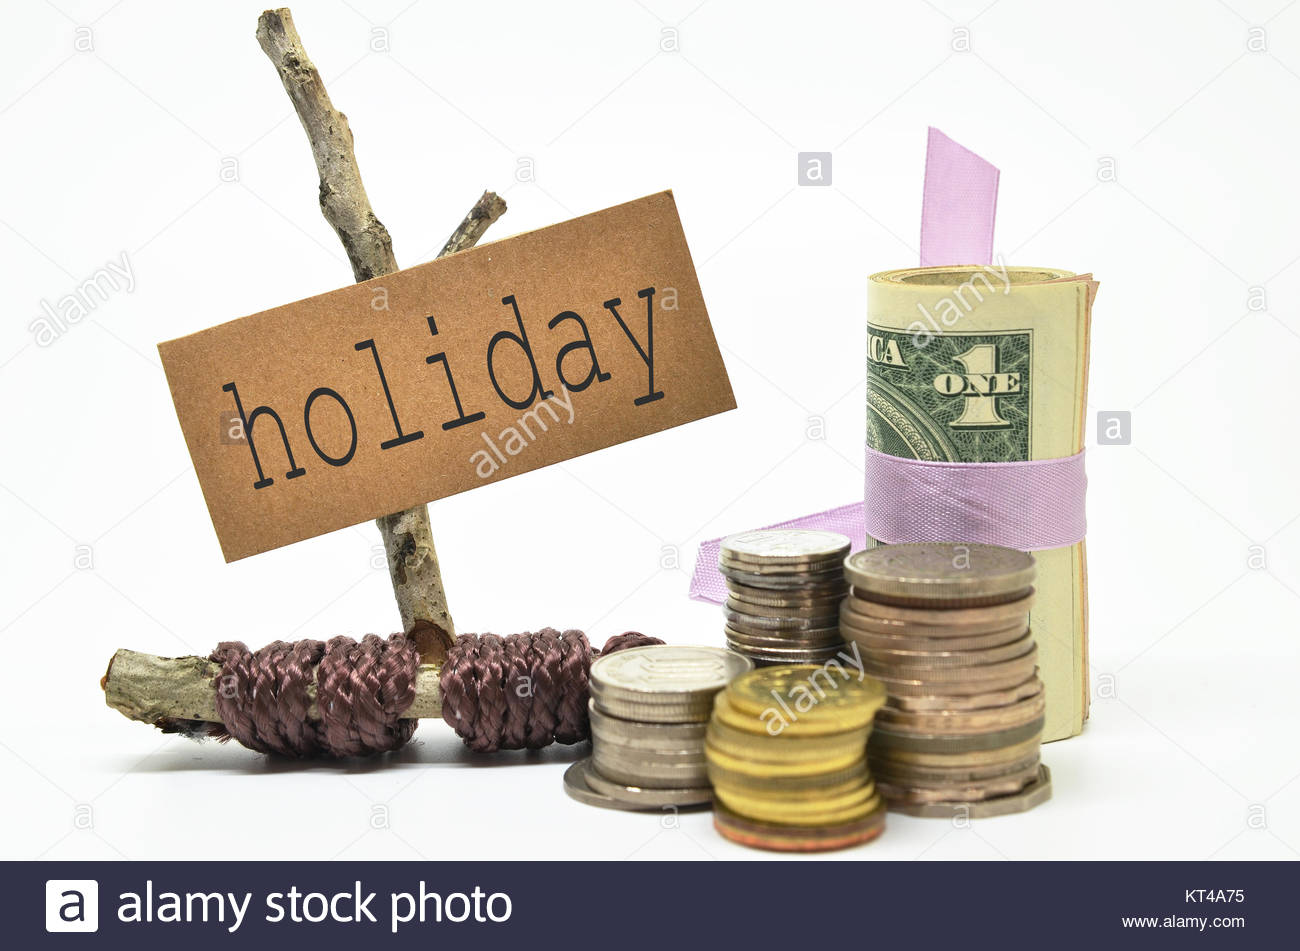 Coins and money with holiday label - Stock Image